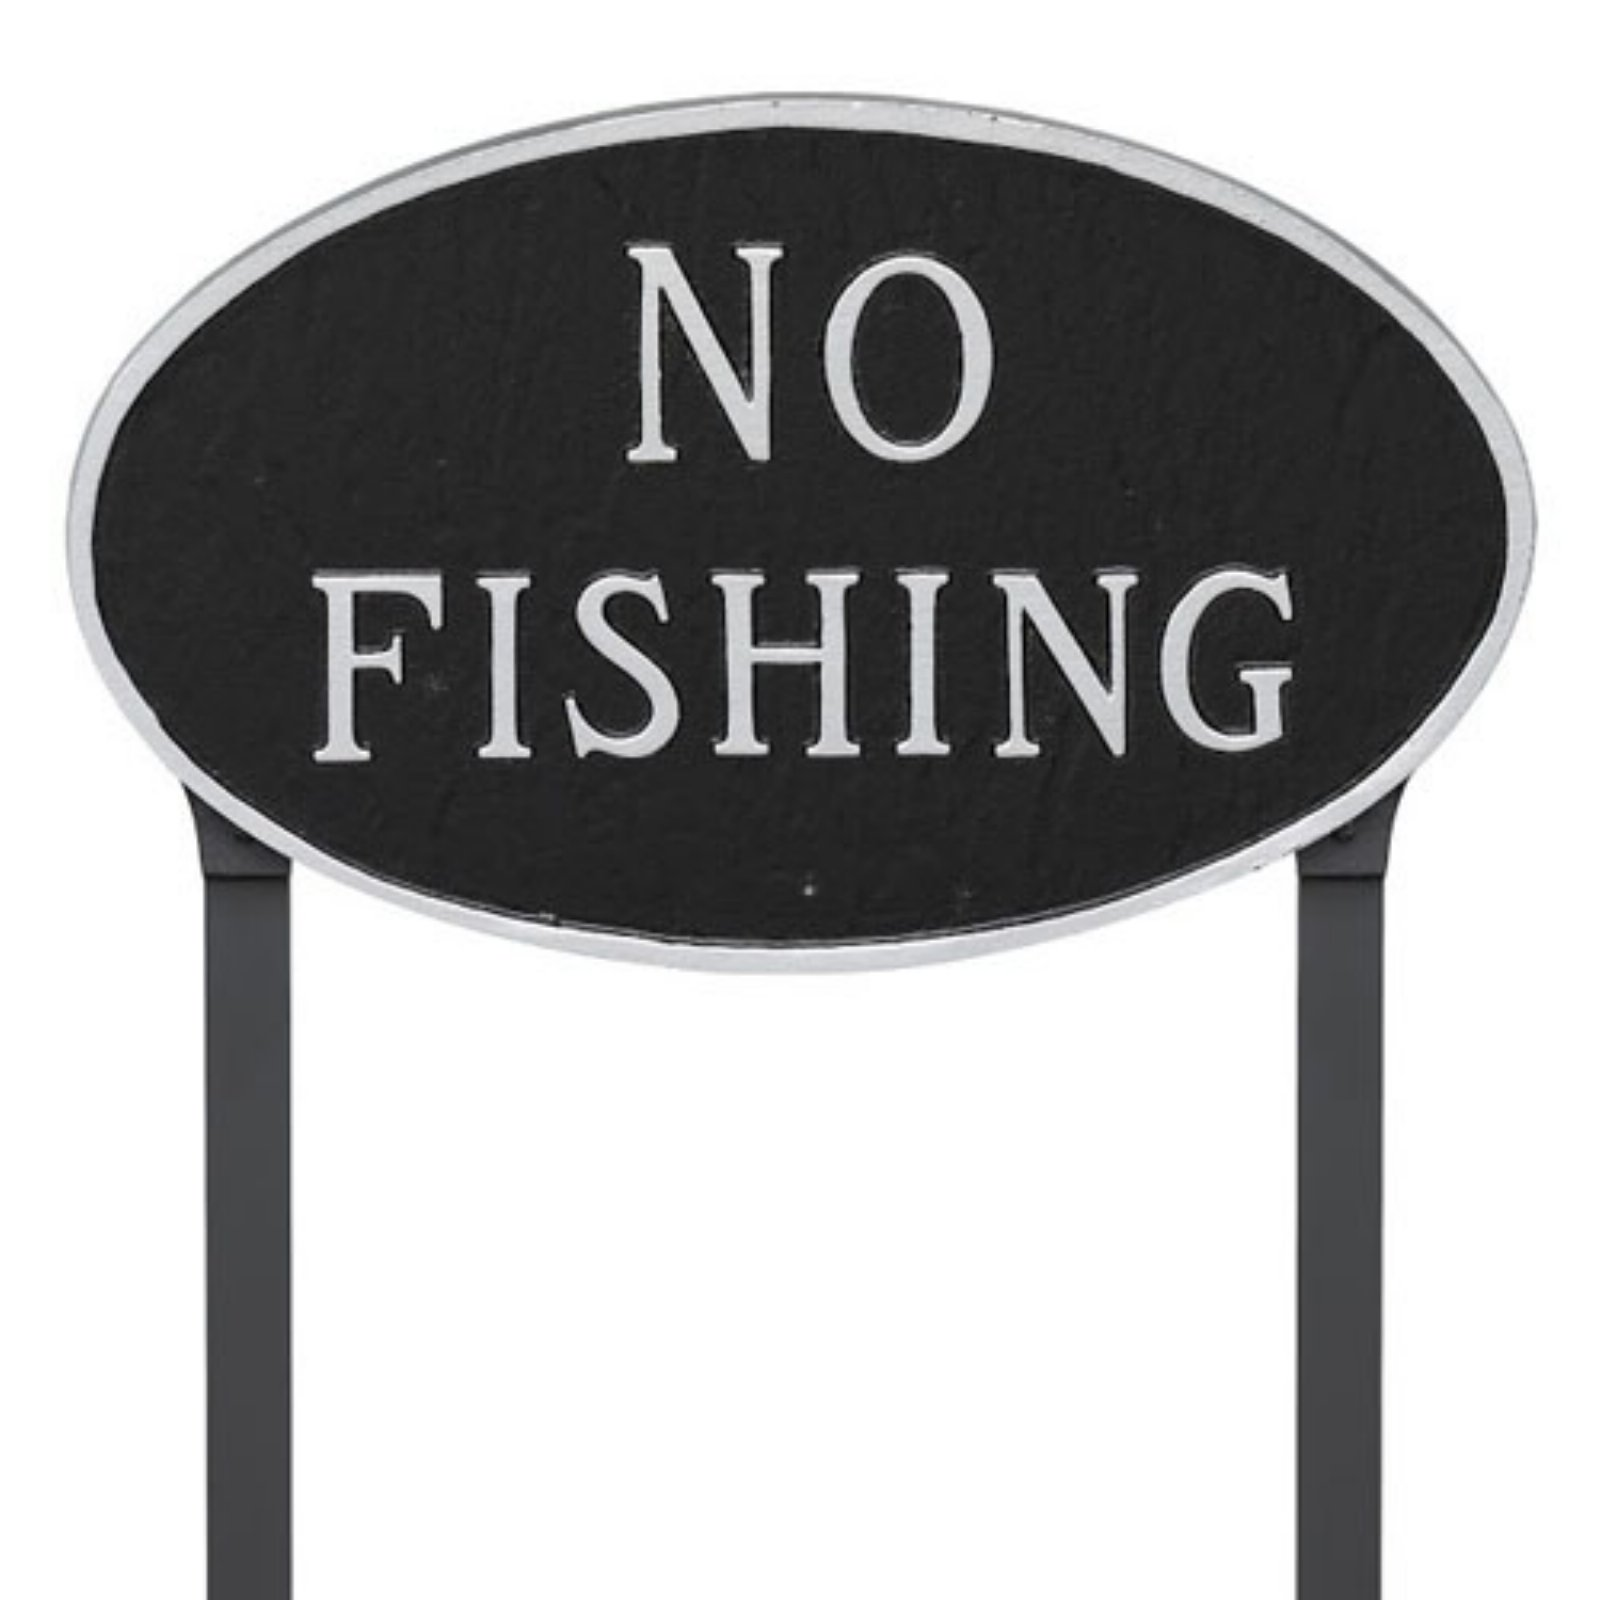 Montague Metal Products No Fishing Oval Lawn Plaque